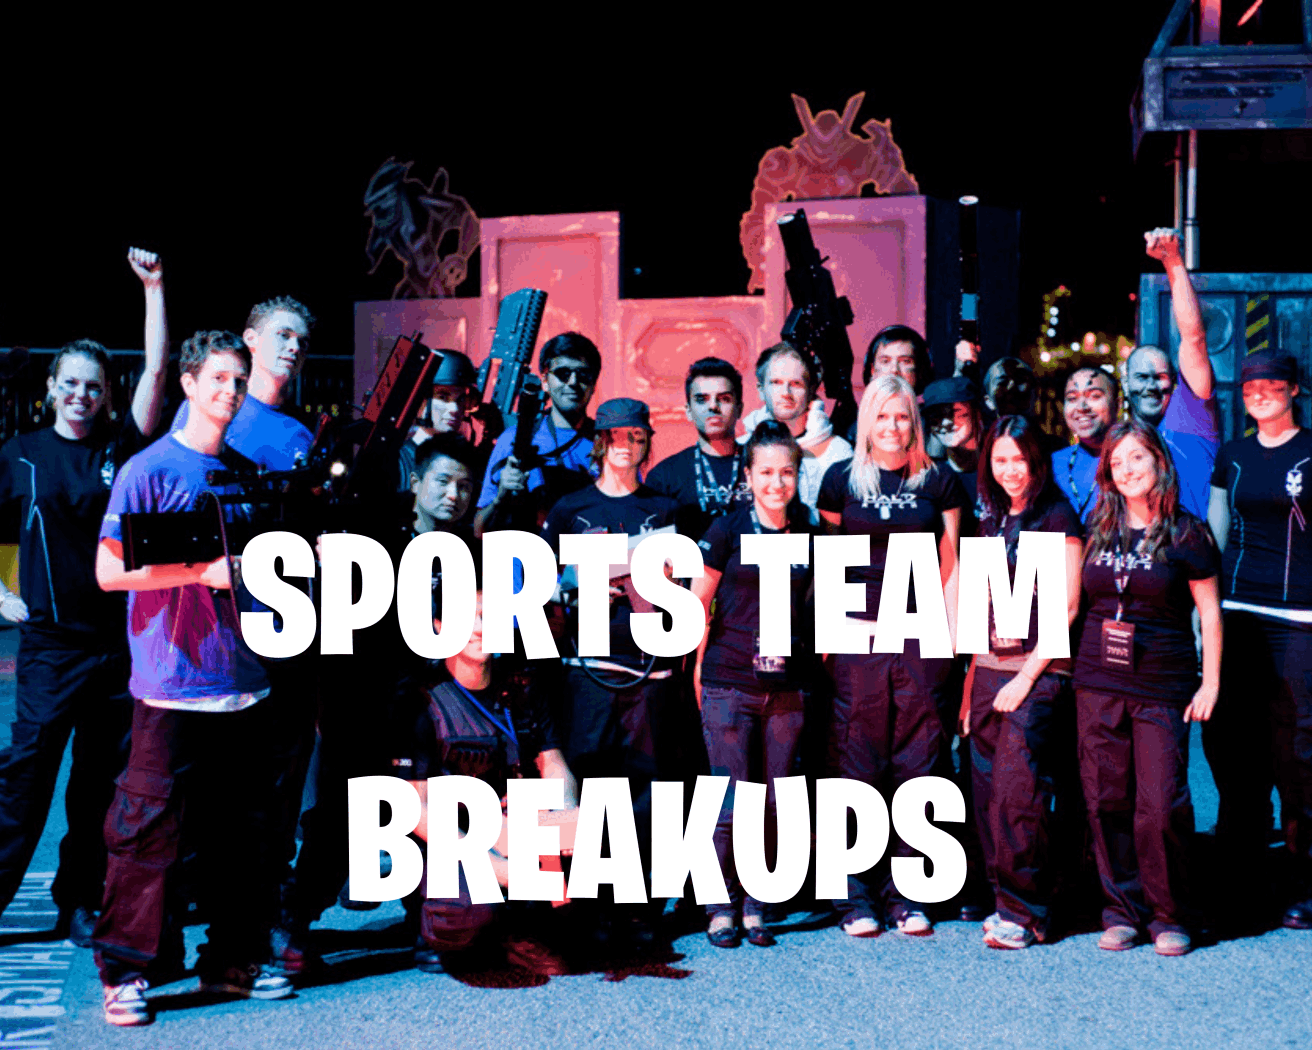 Sports Team break up link